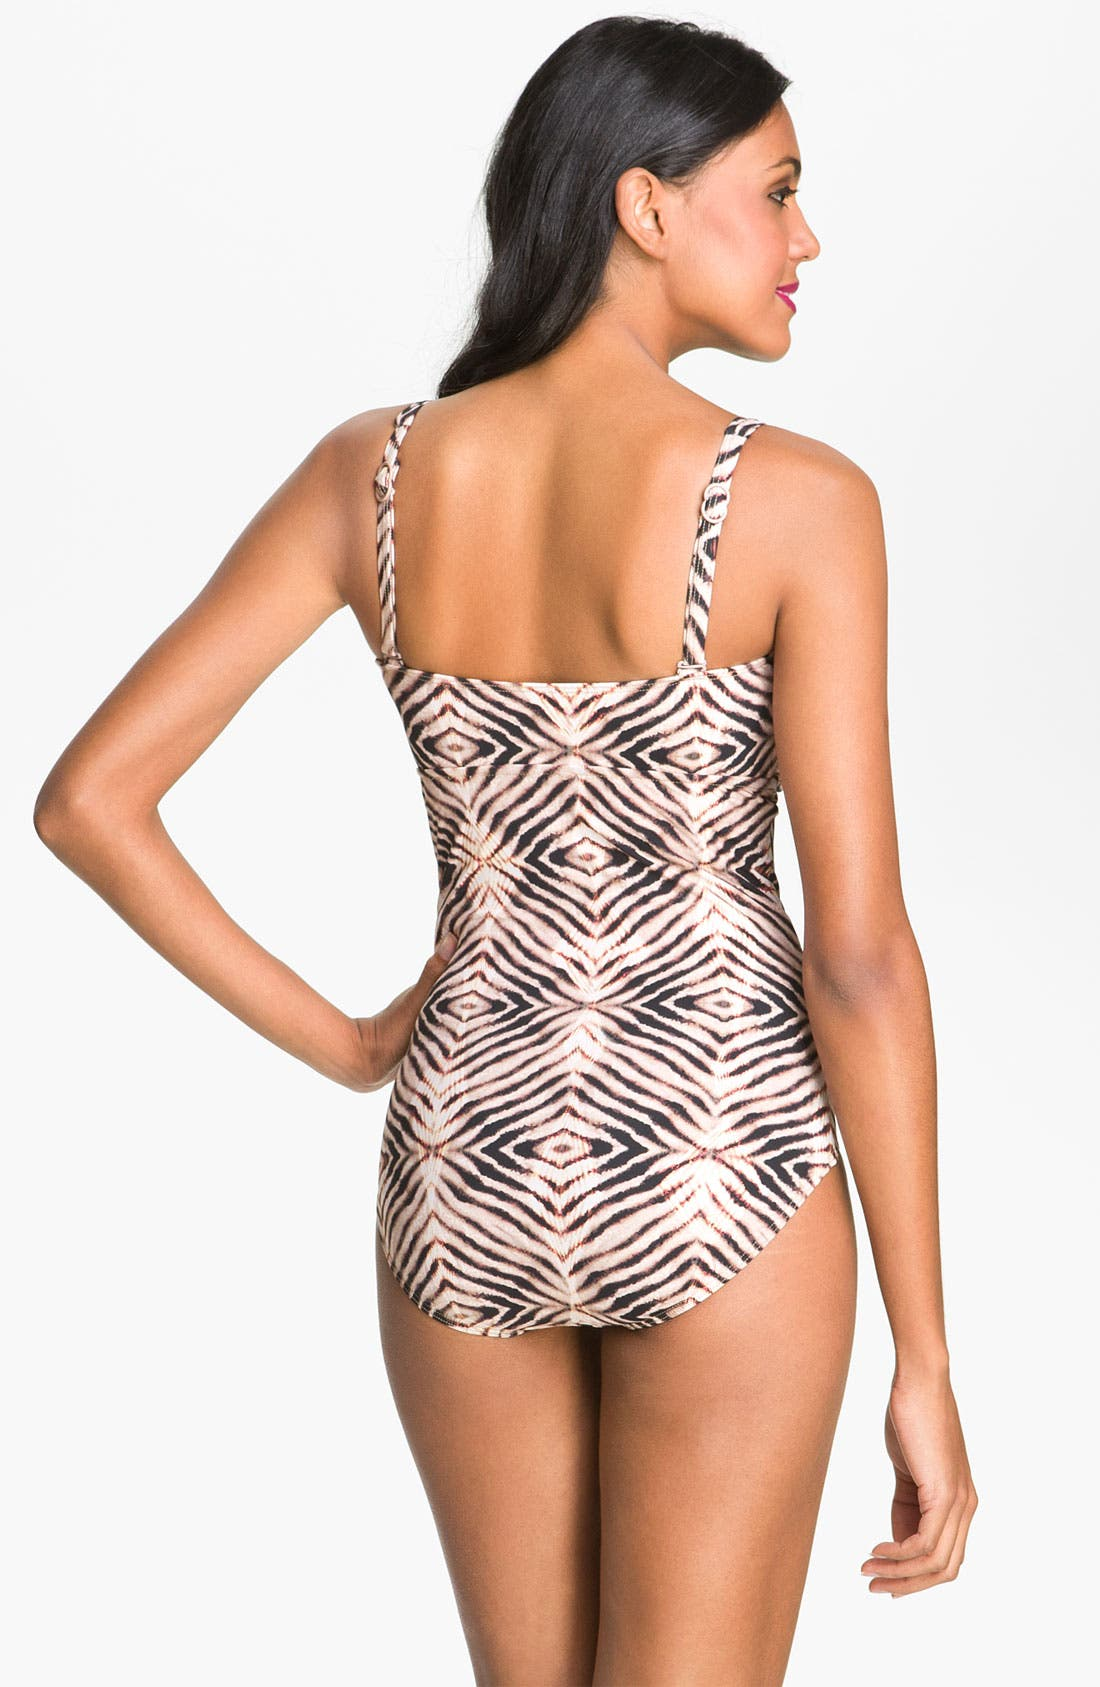 Alternate Image 2  - Seafolly 'Amazon' One Piece Swimsuit (D Cup)